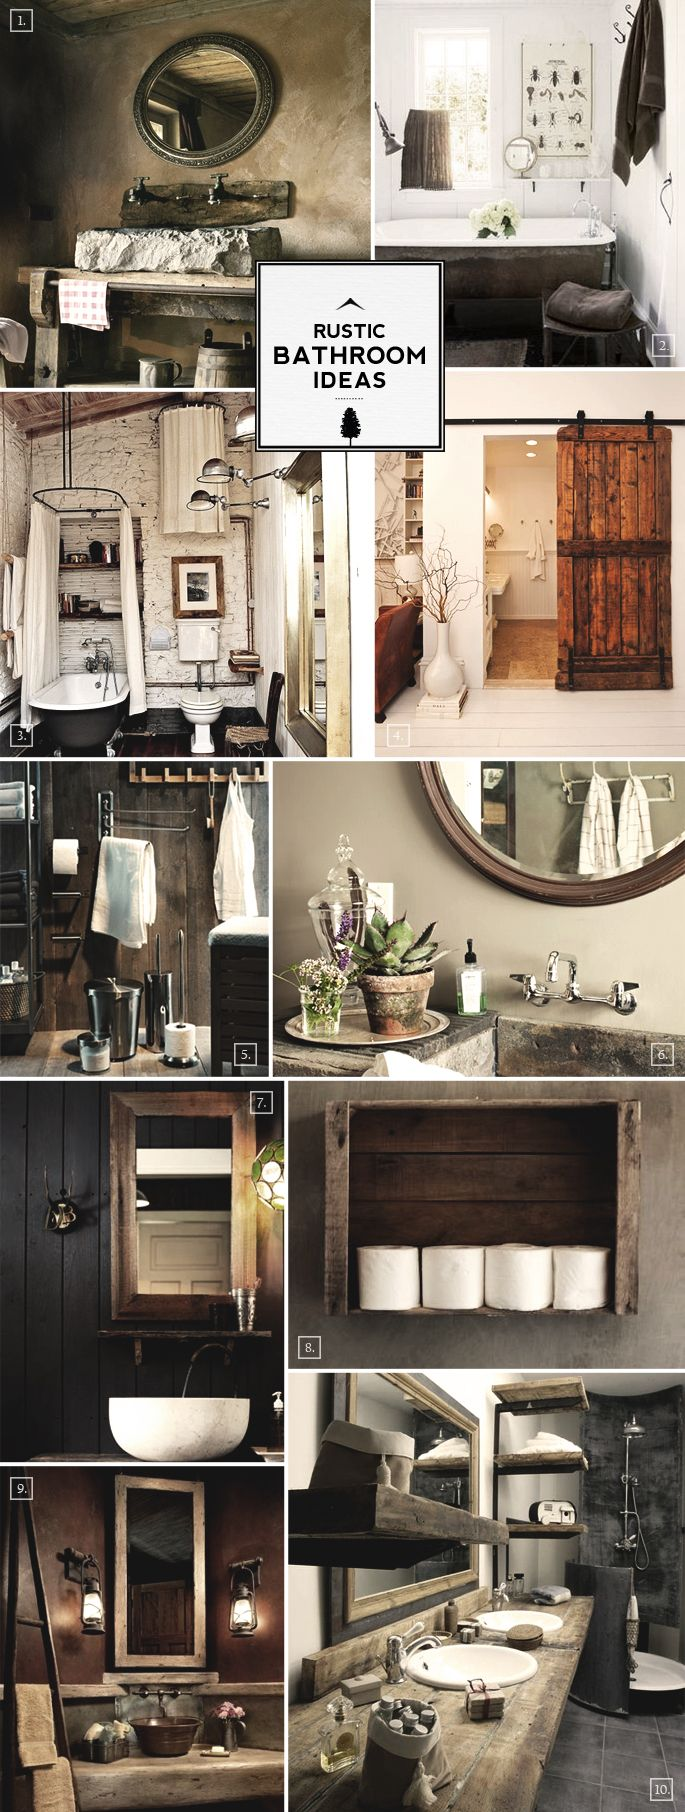 Rustic bathroom decor on pinterest vessel sink bathroom for Rustic bathroom ideas